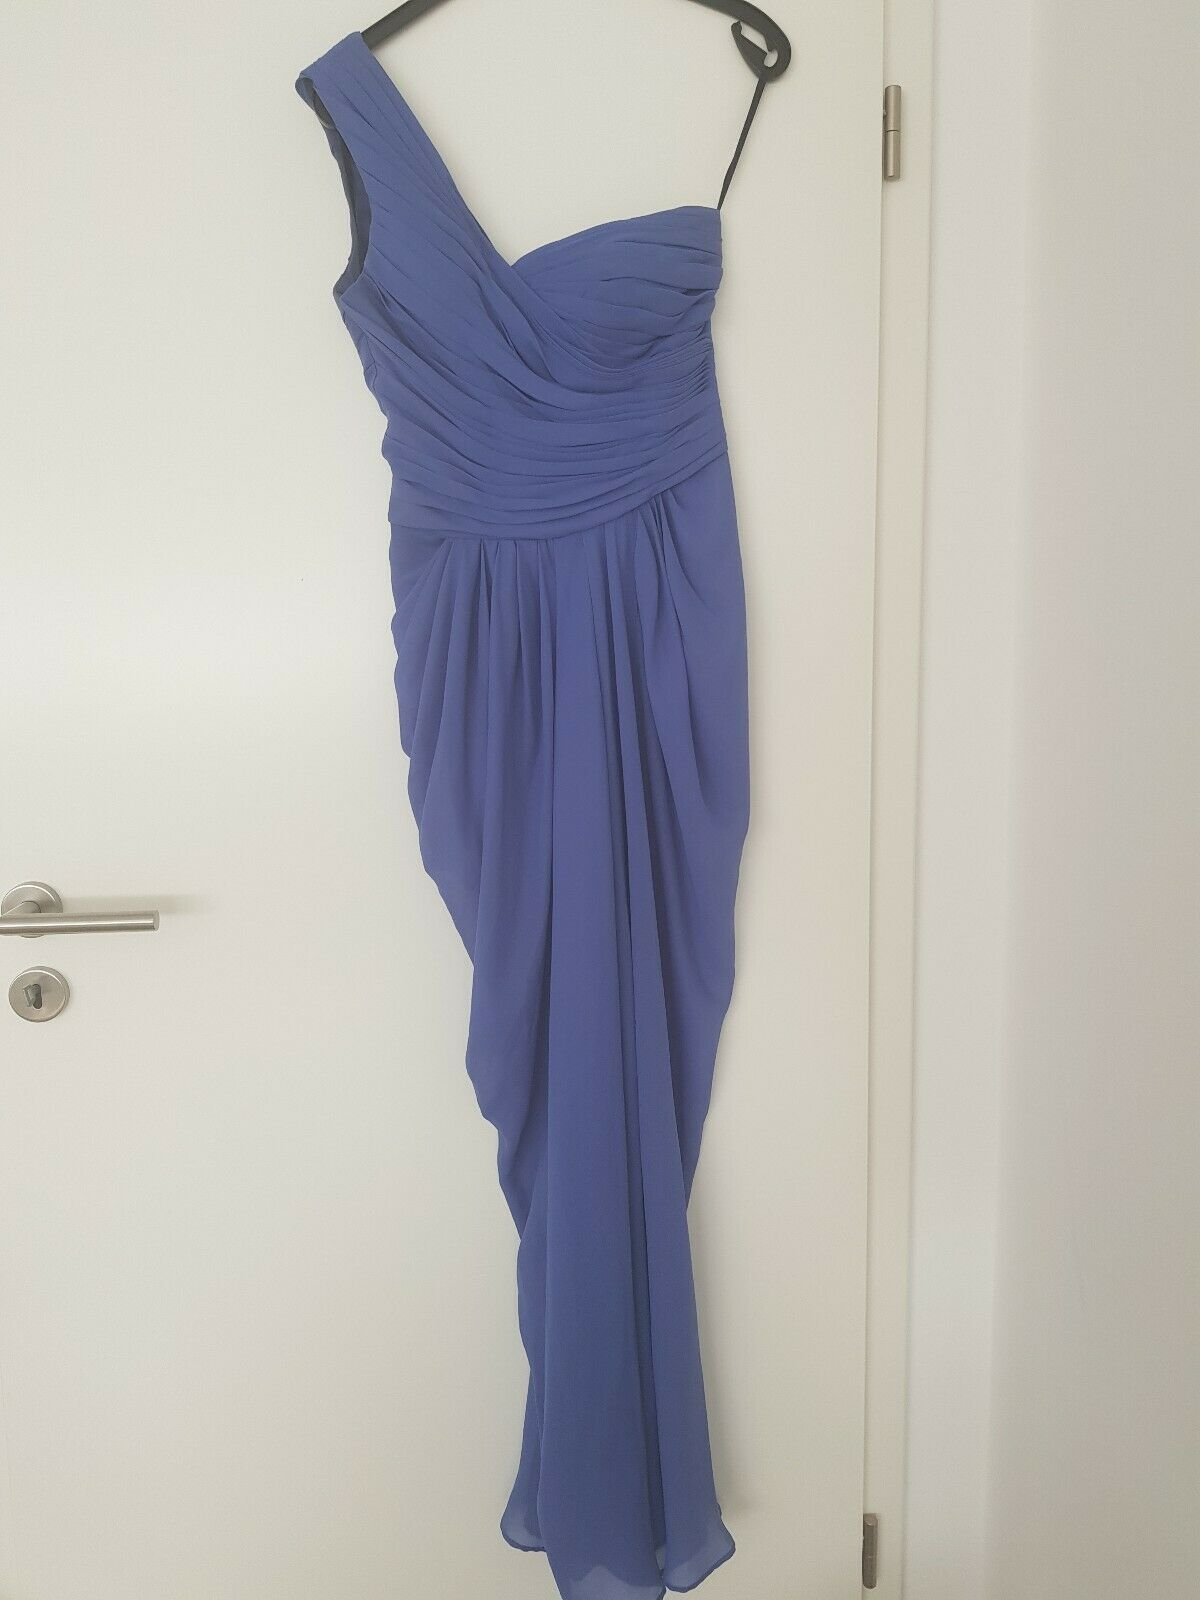 One Shoulder Kleid 36 Blau Abendkleid